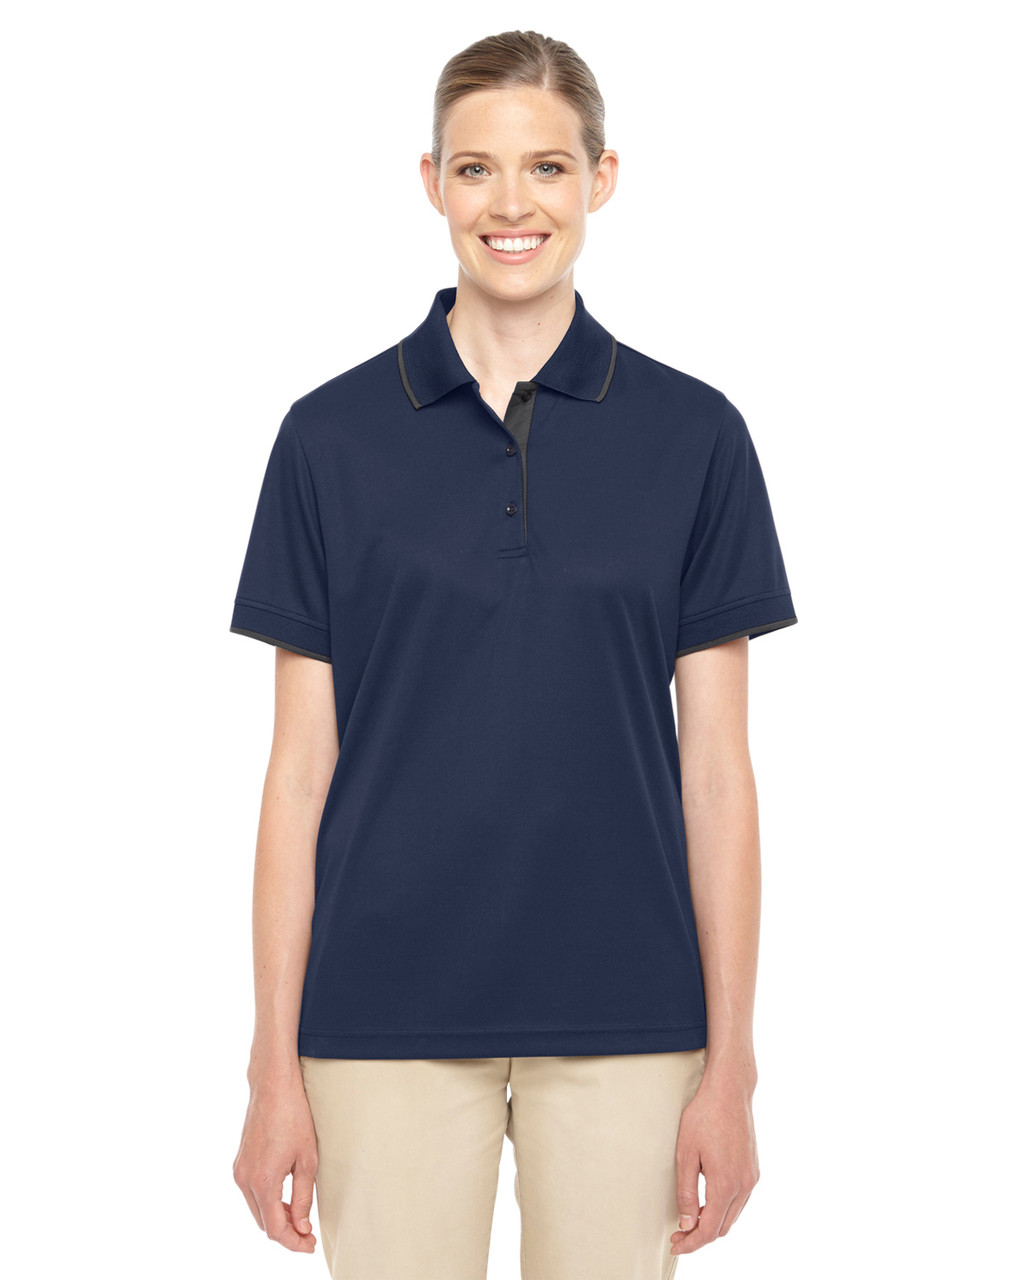 Classic Navy/Carbon - 78222 Ash City - Core 365 Ladies' Motive Performance Pique Polo Shirt with Tipped Collar | Blankclothing.ca